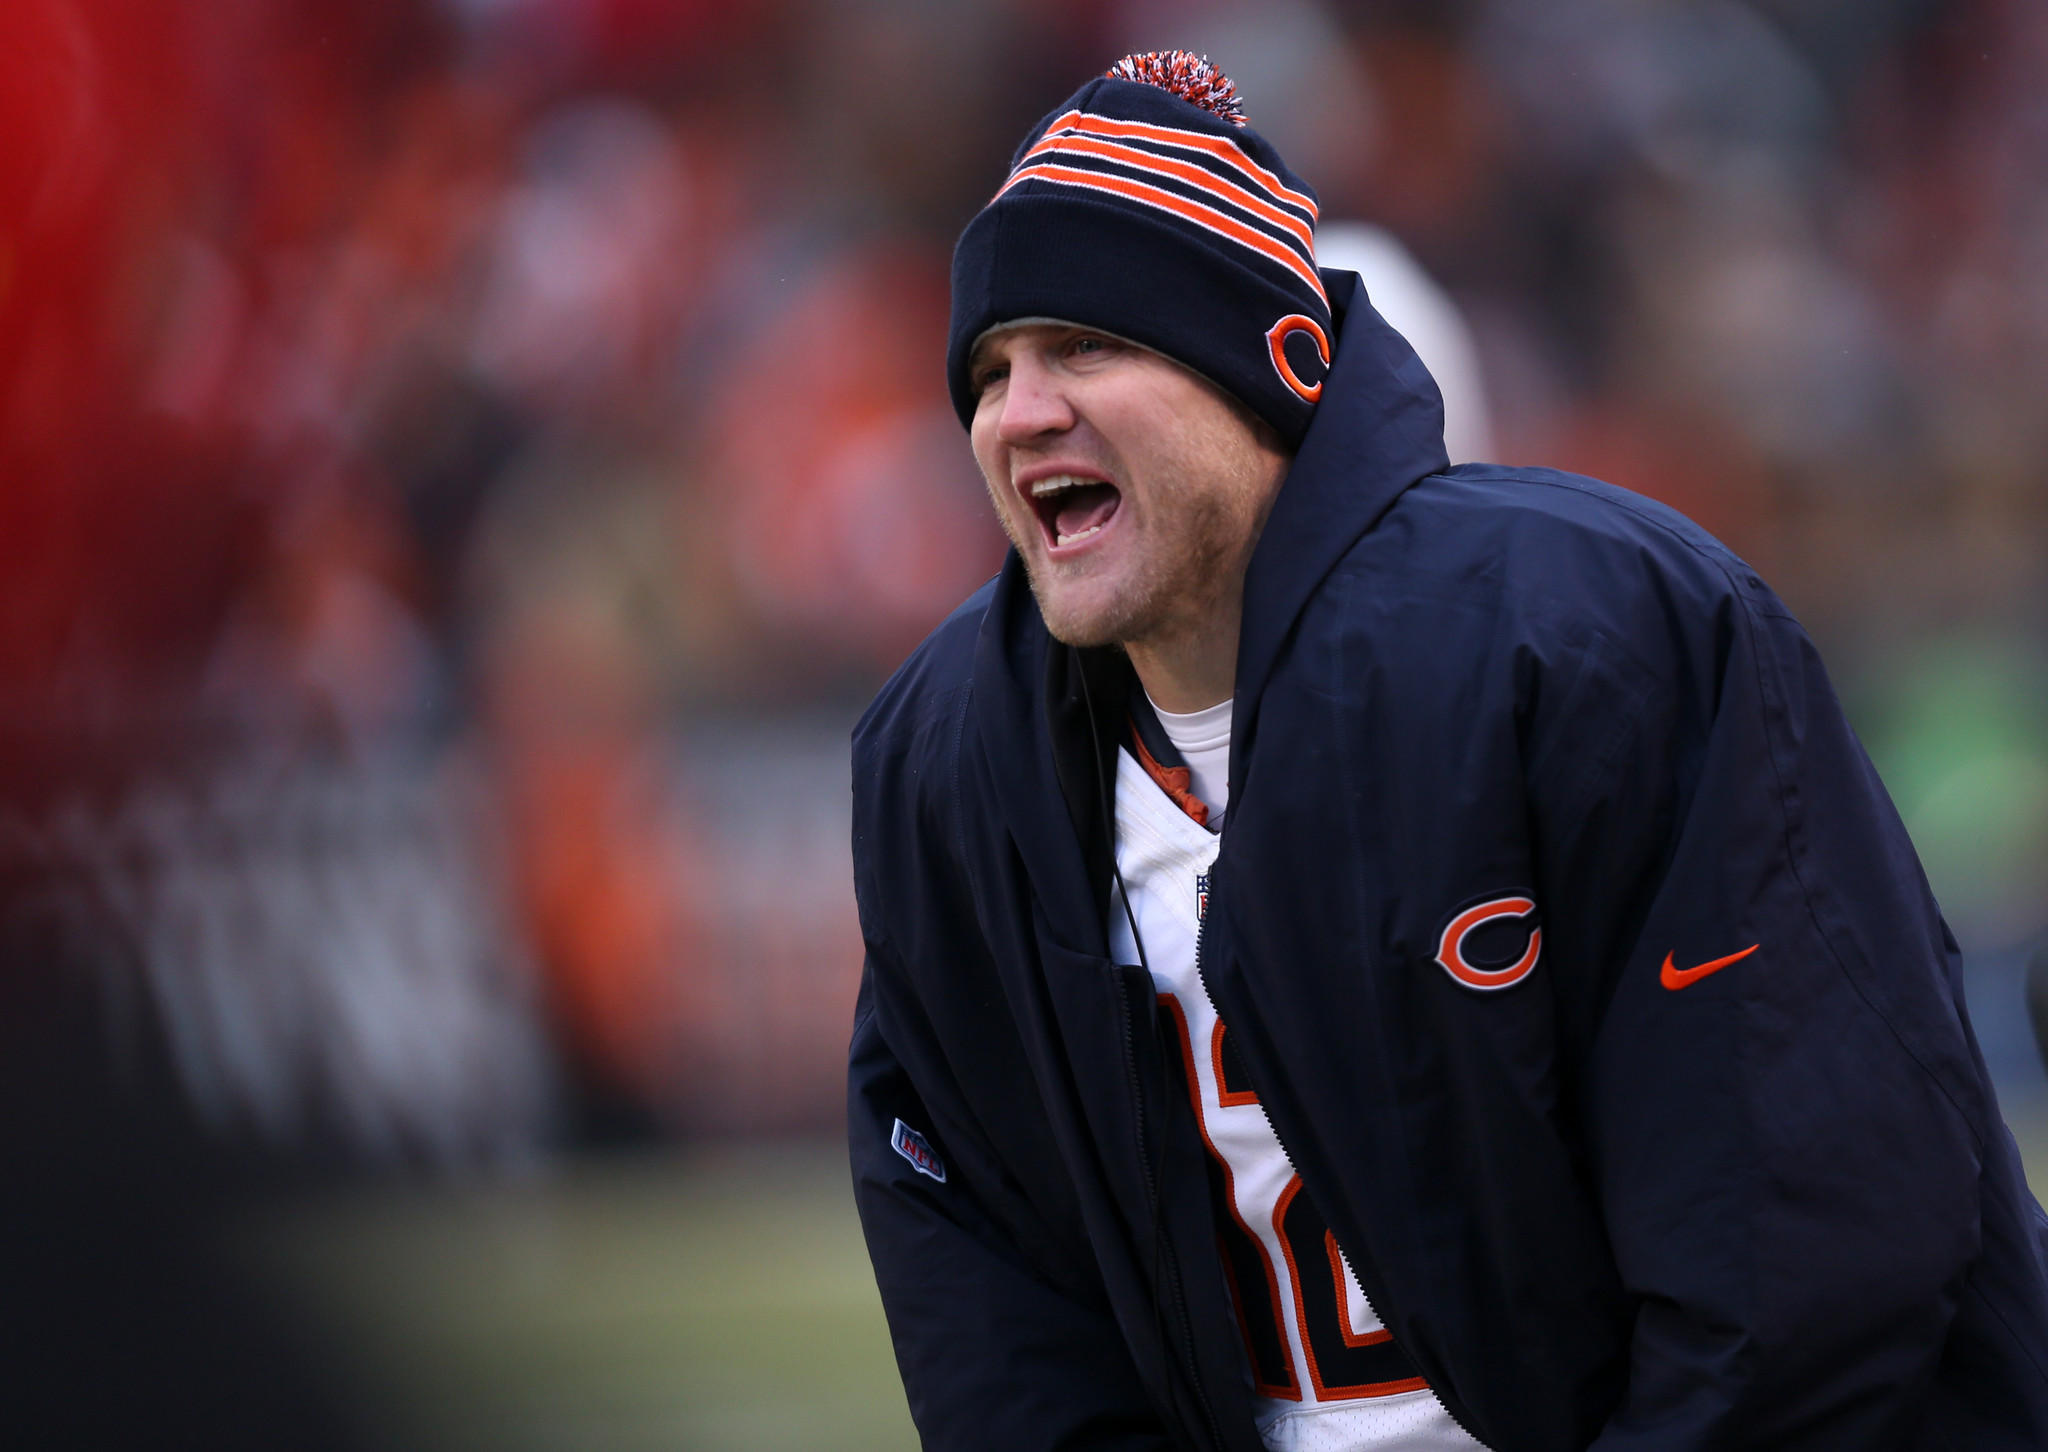 Bears quarterback Josh McCown cheers on his teammates from the sidelines during a game against the Cleveland Browns.